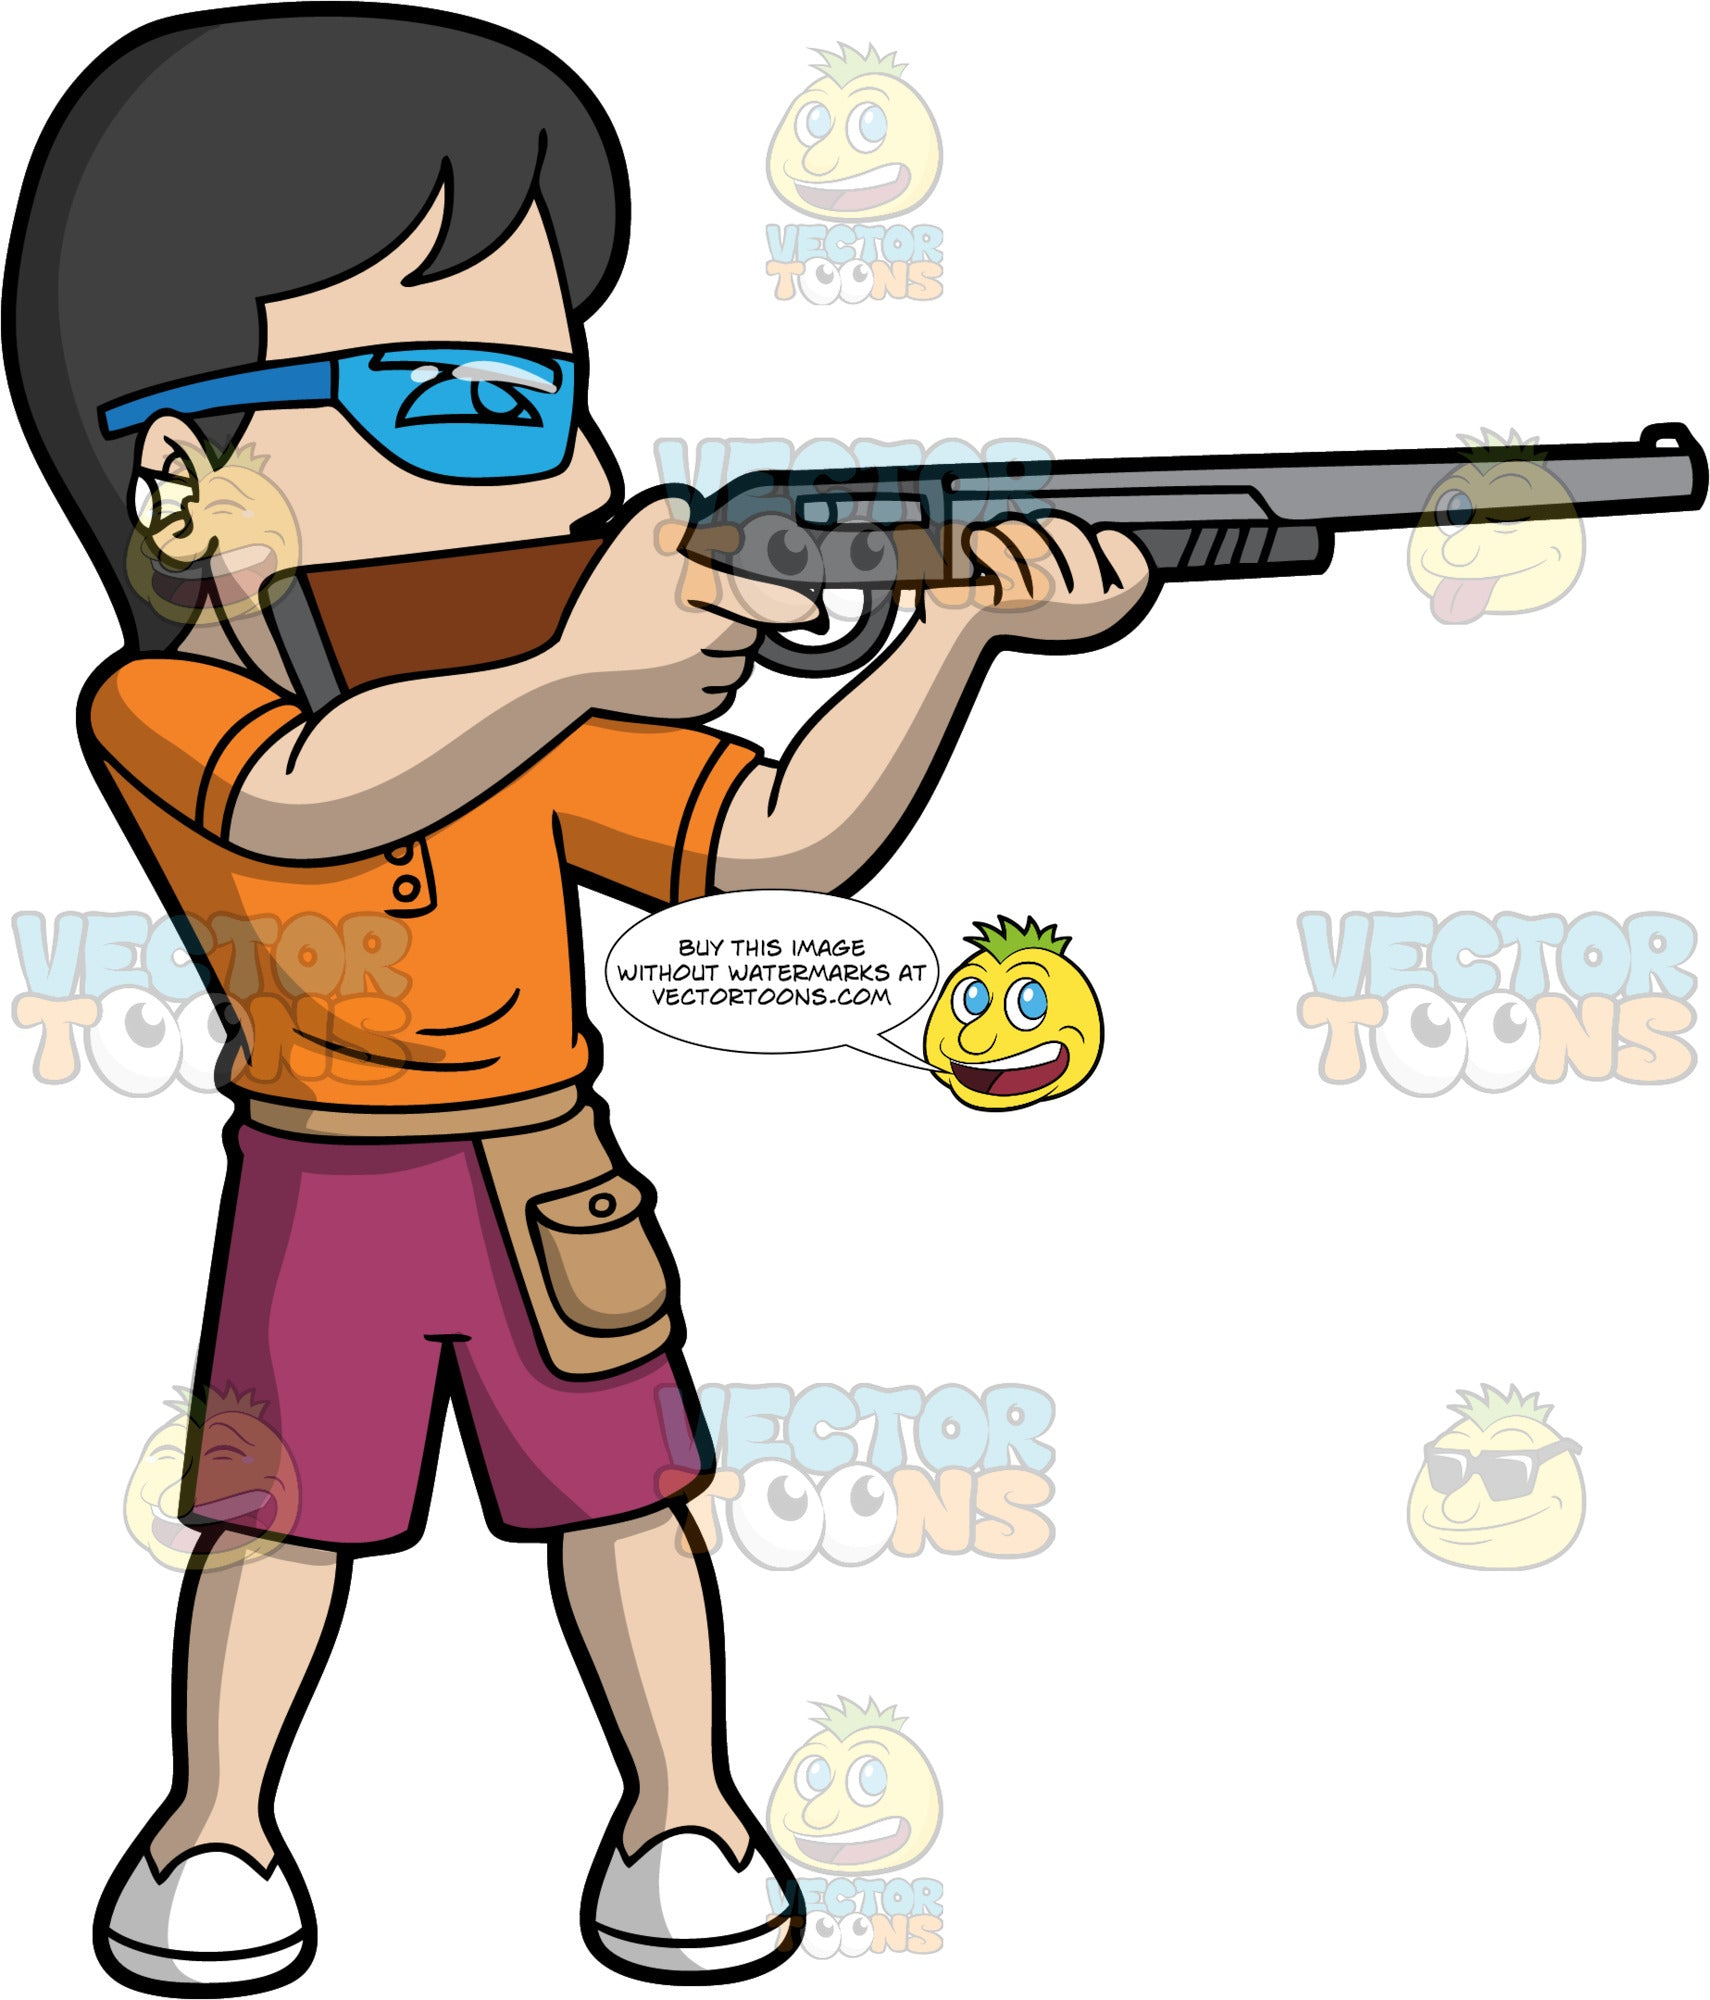 A Man Skeet Shooting. A man with black hair, wearing burgundy shorts, an orange shirt, white shoes, earplugs, and blue safety glasses, holds a shotgun in his hands and gets ready to fire at the clay target